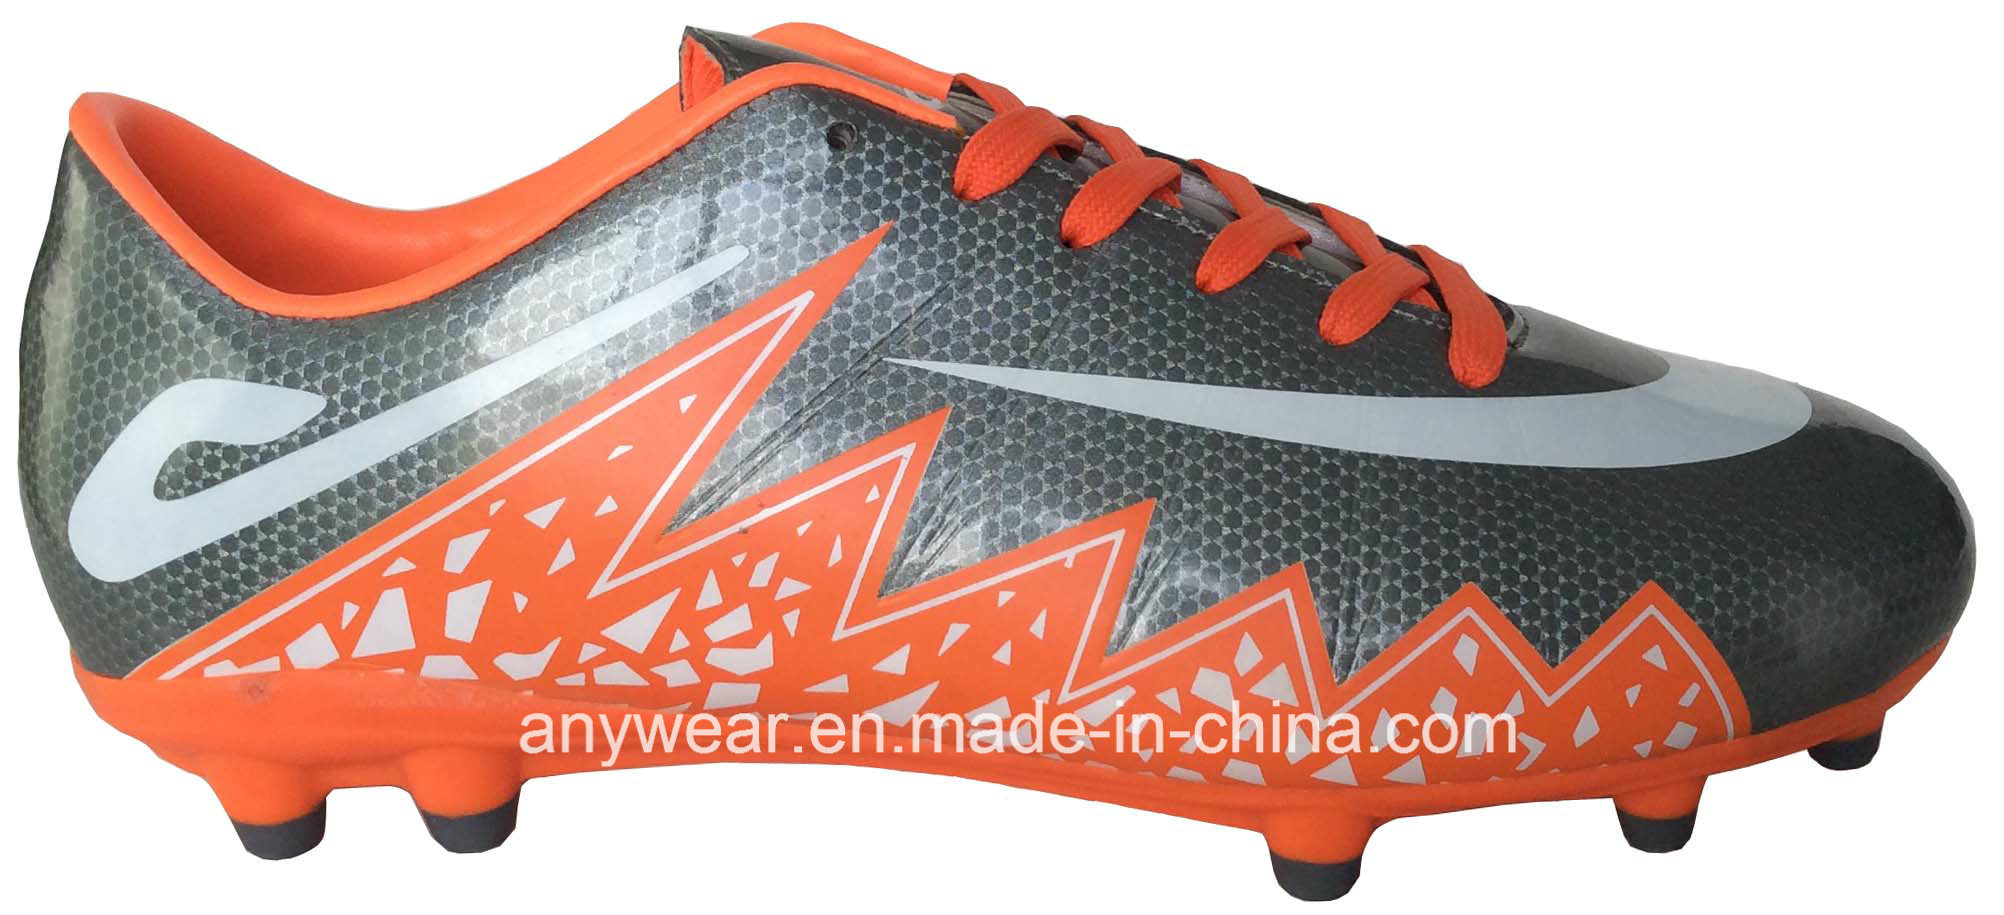 Men′s Soccer Football Boots with TPU Outsole Shoes (815-2647)